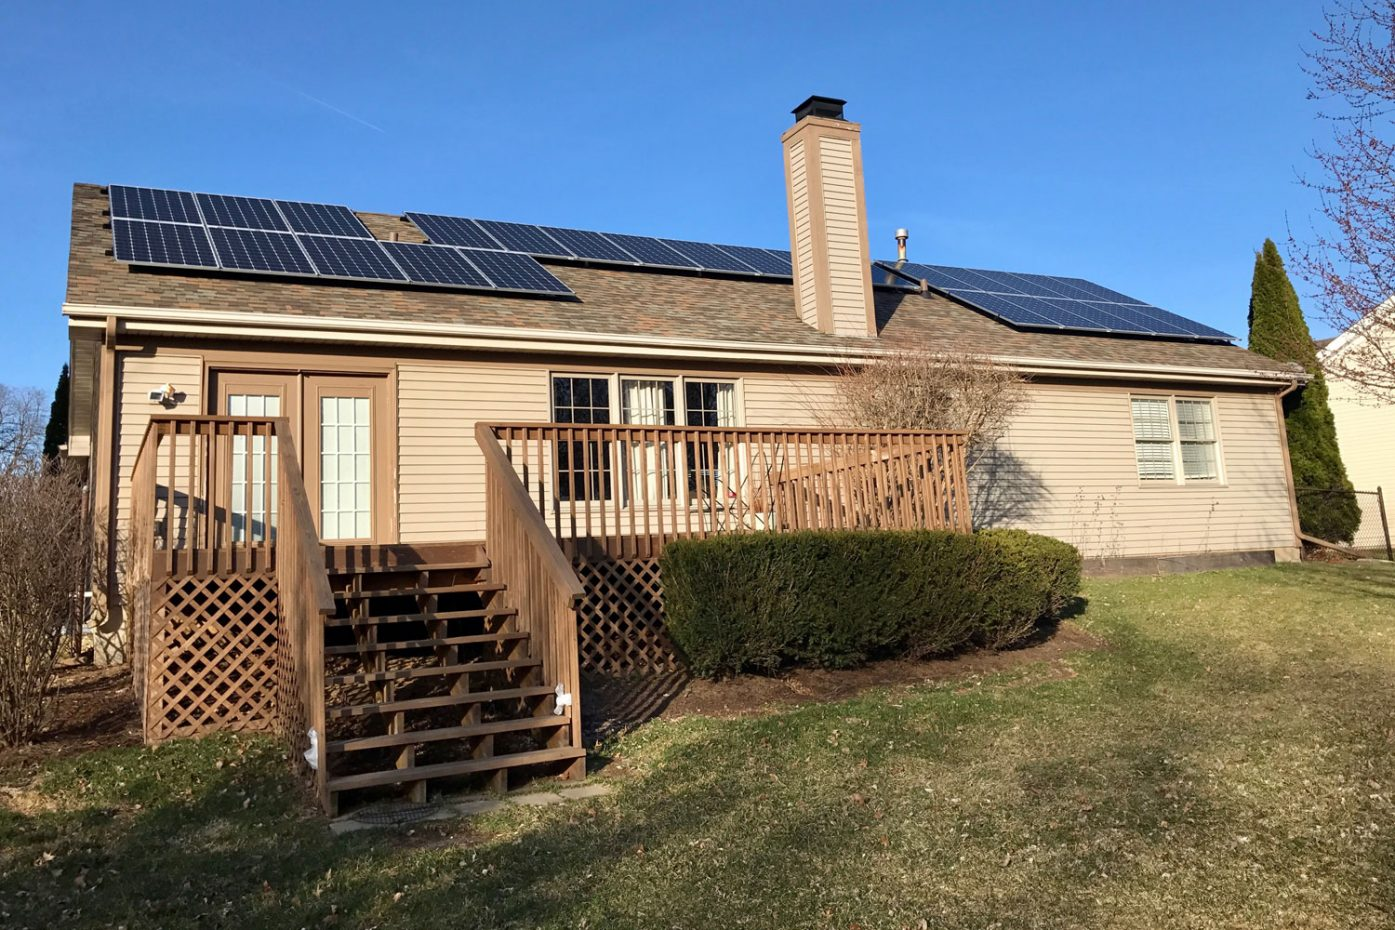 Solar Installation Services in Rockford, IL - Rethink Electric